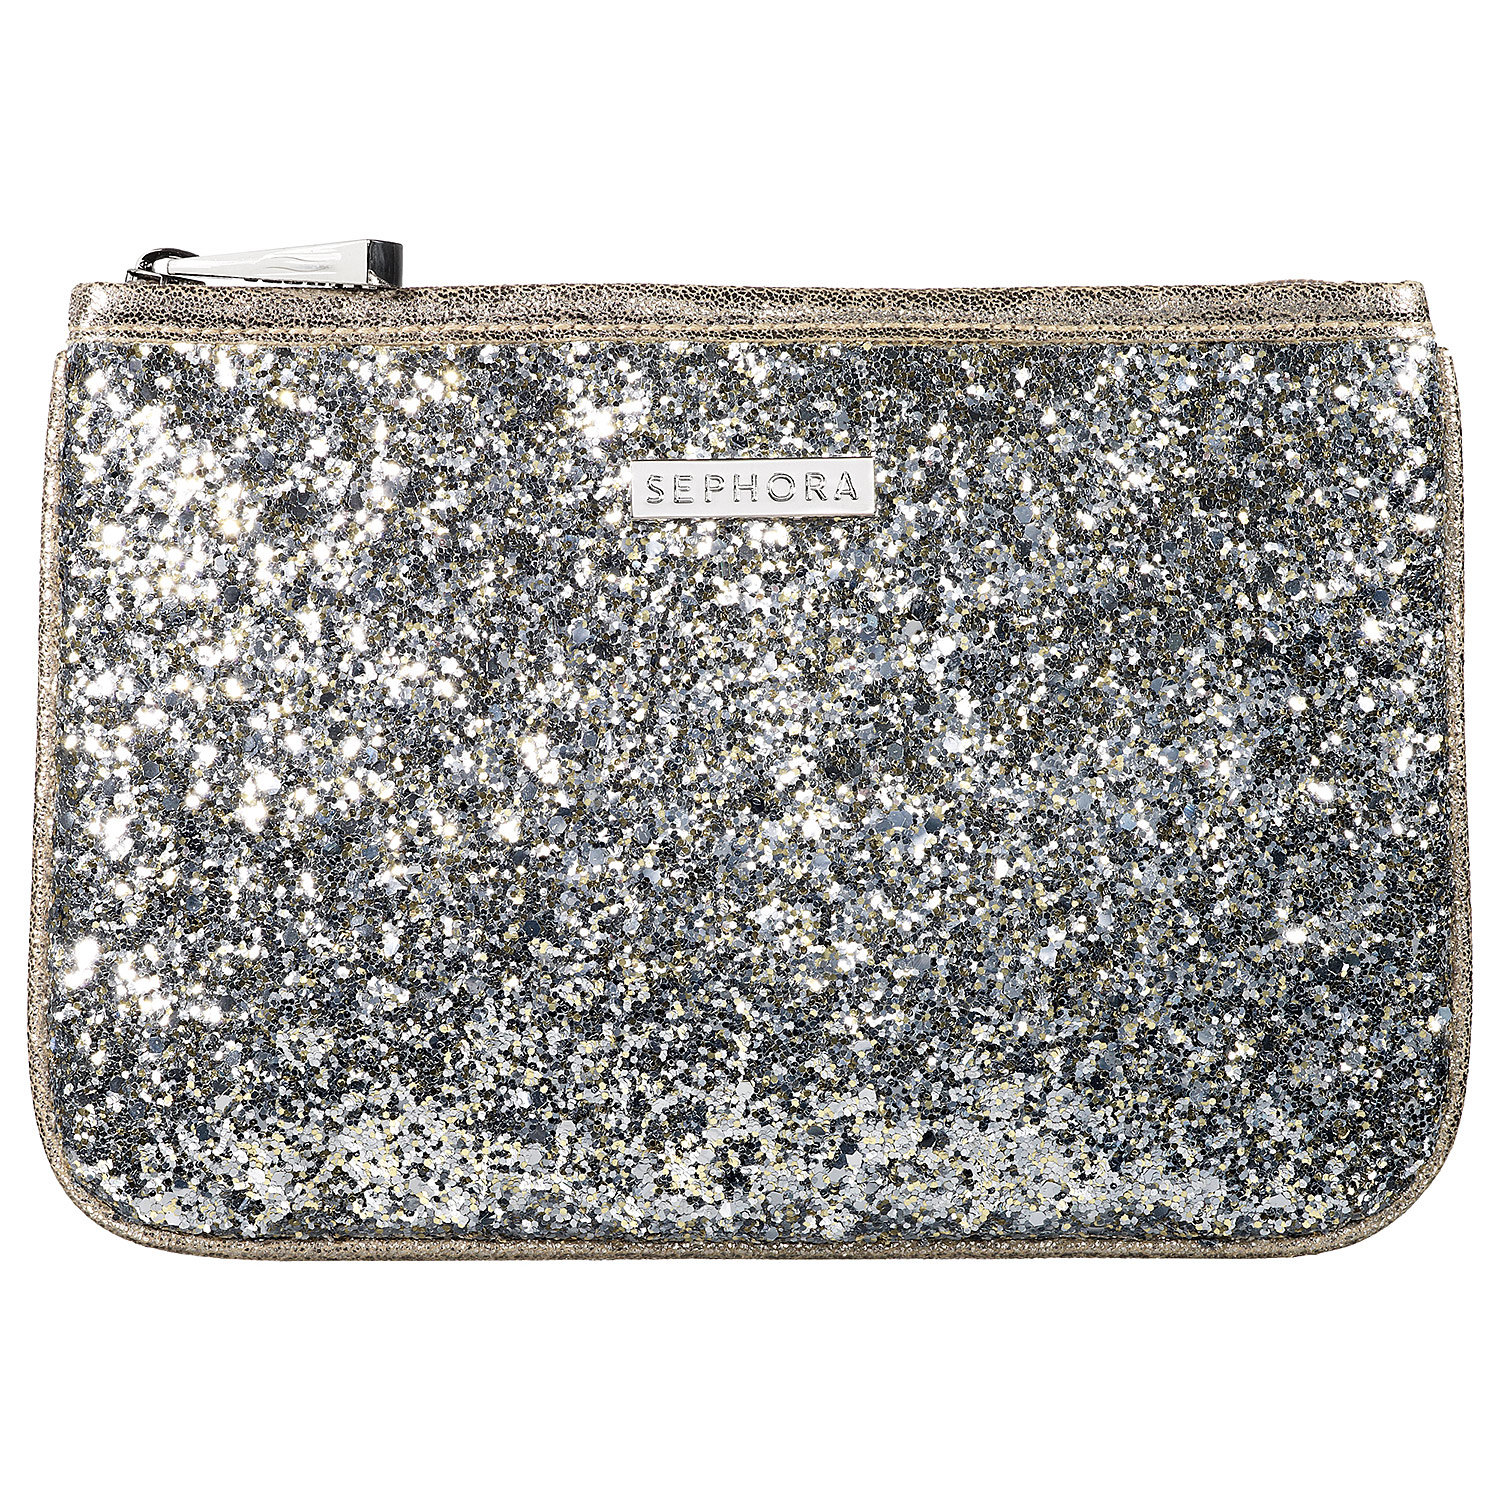 SEPHORA COLLECTION Arm Candy Clutch - from Sephora